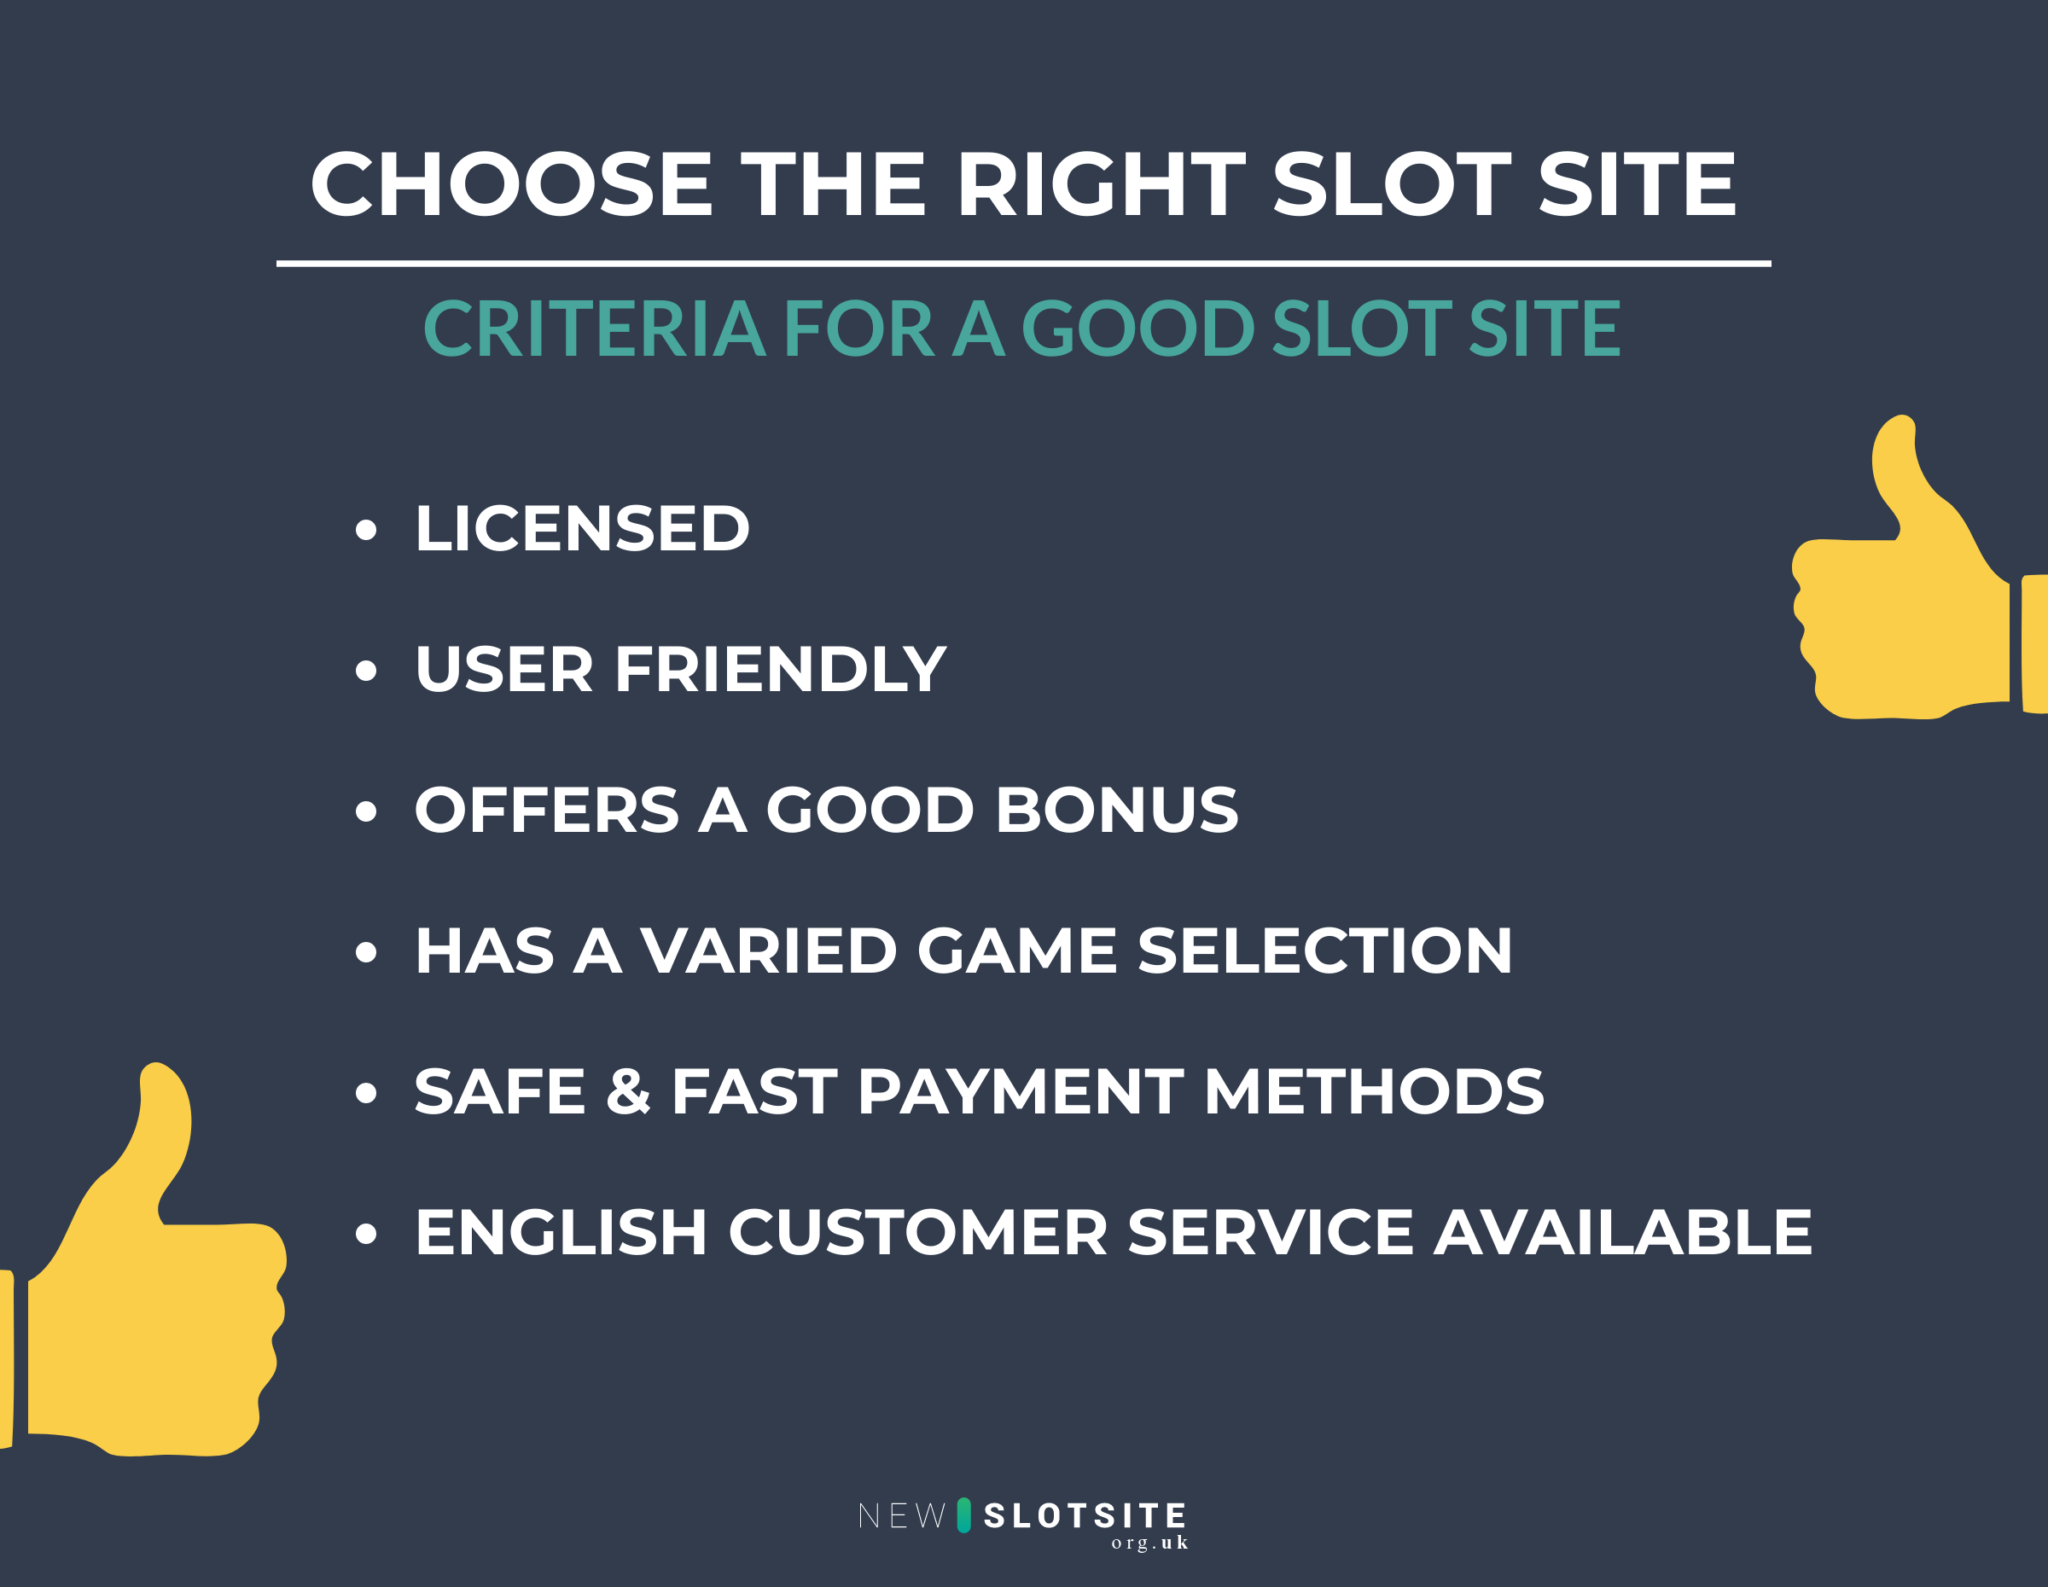 choose the right new slot site